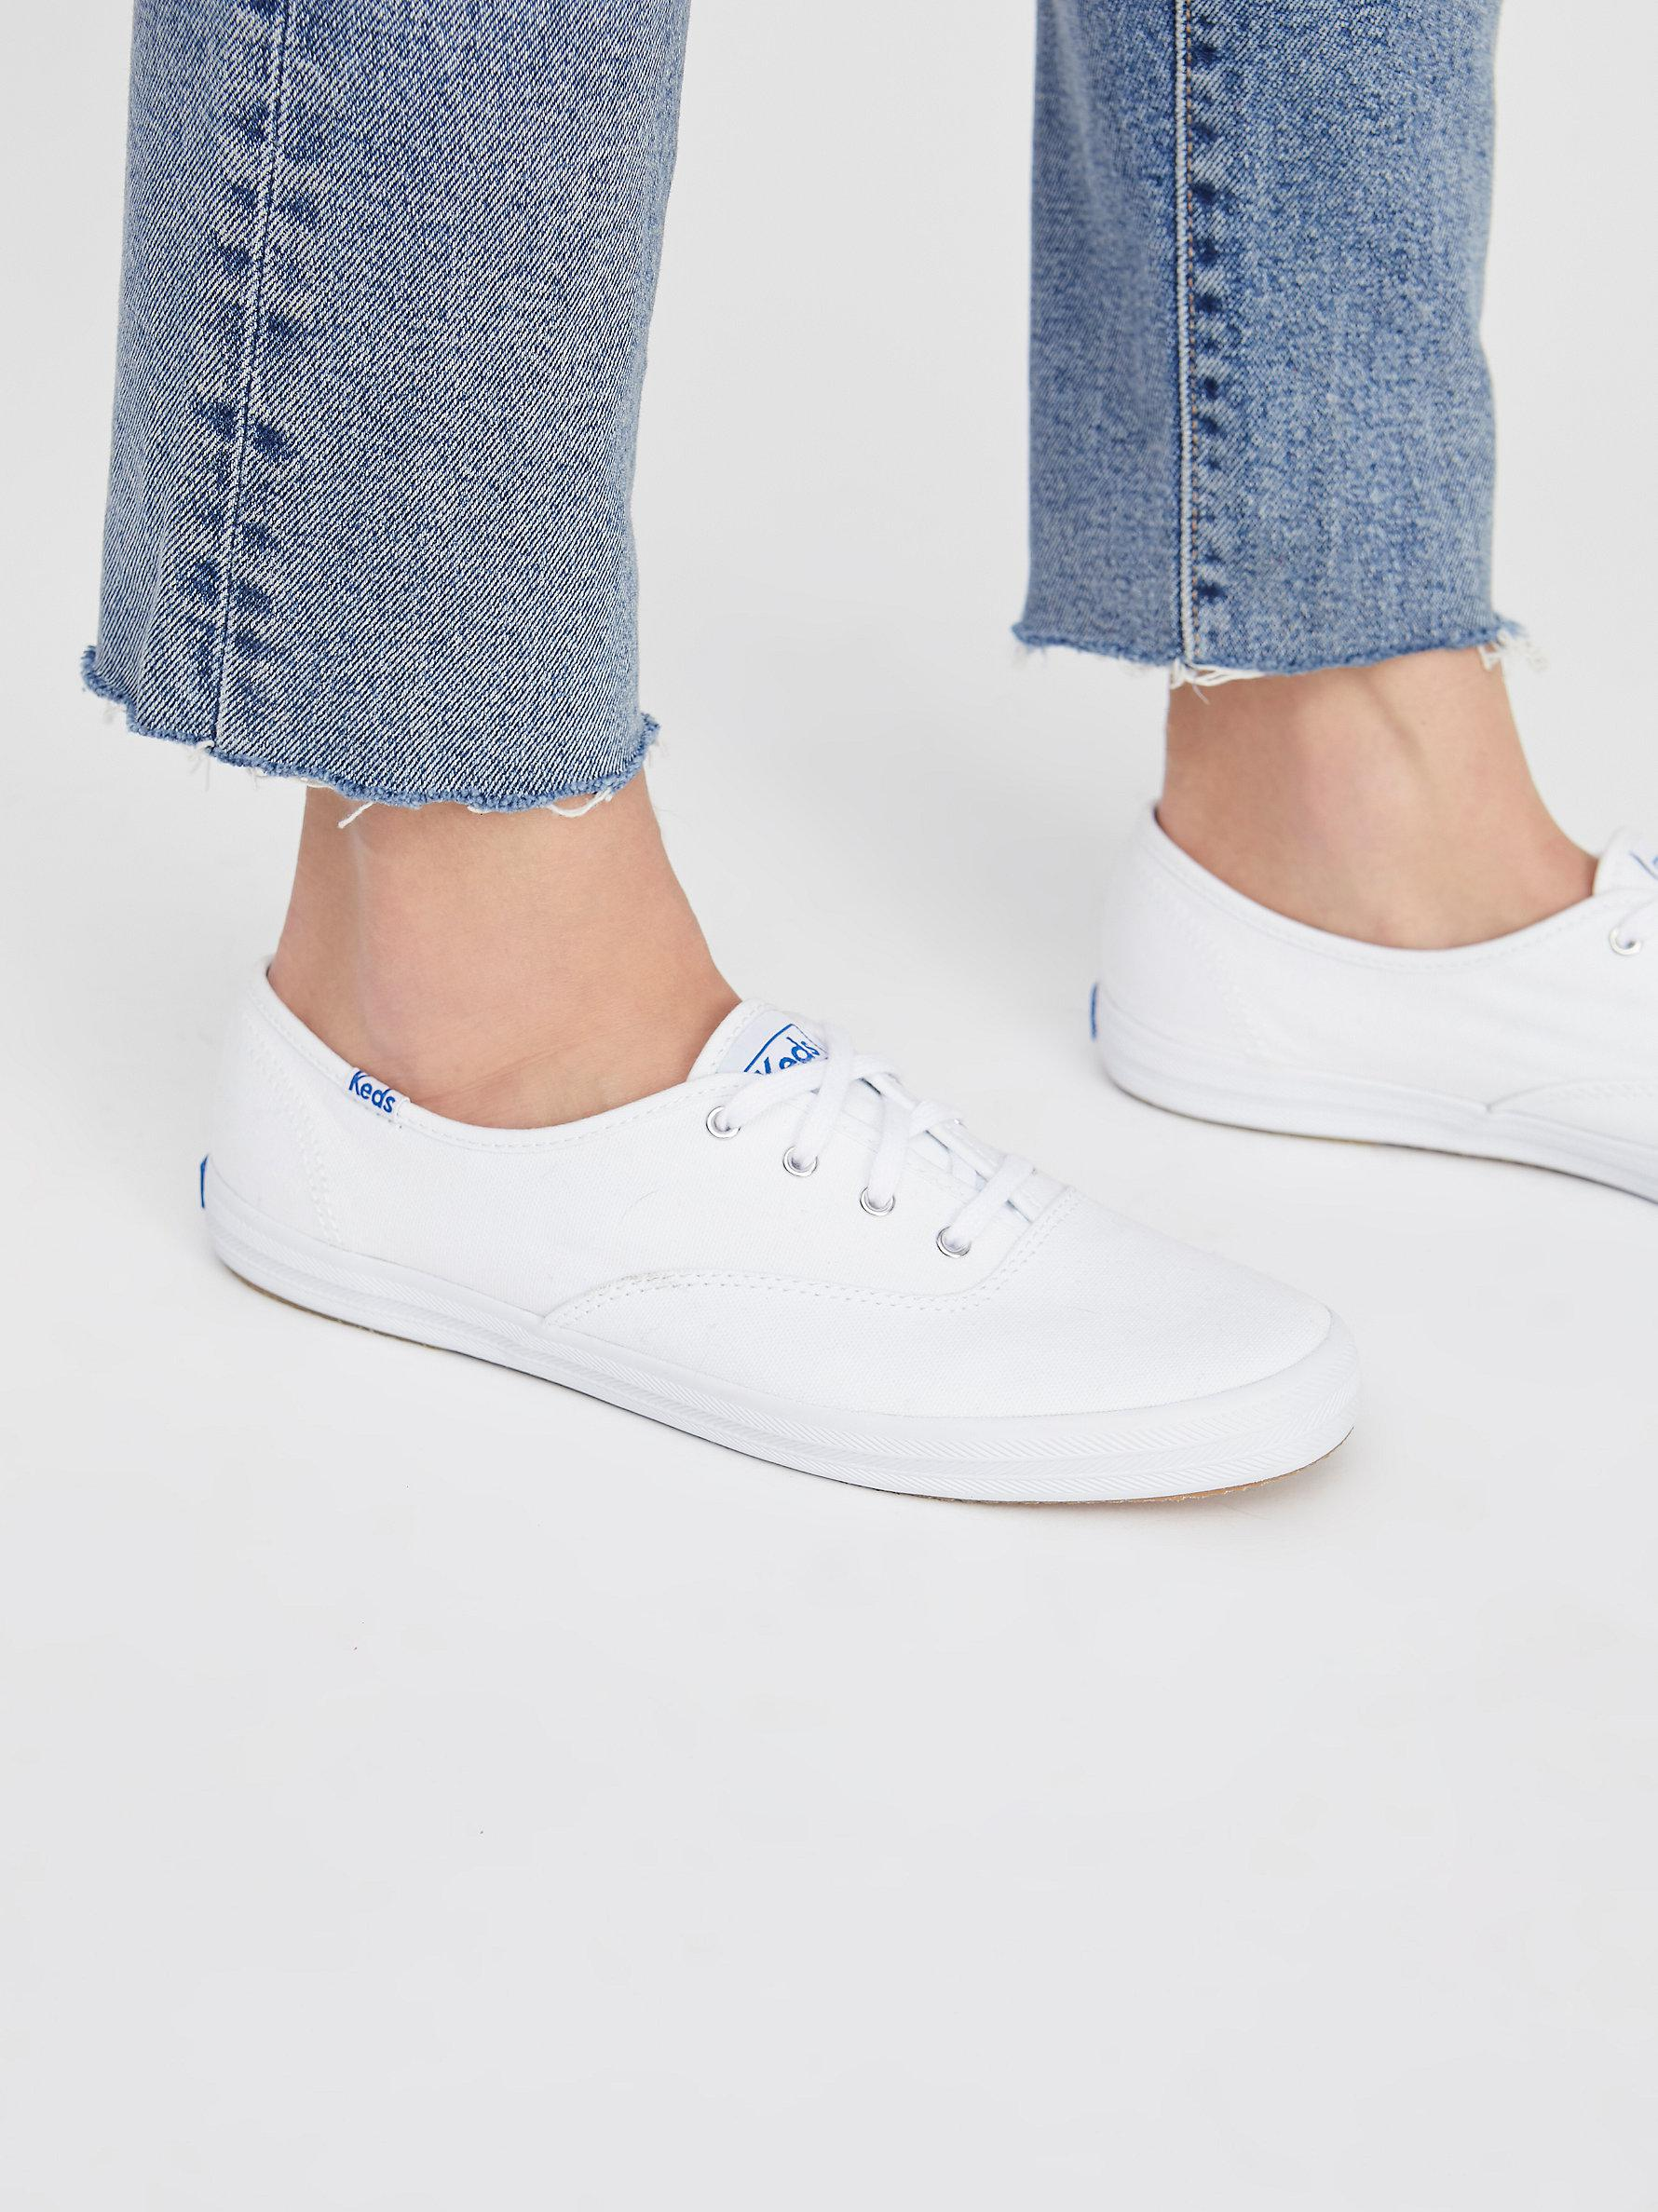 017a4d678c5 Lyst - Free People Keds Champion Sneaker in White